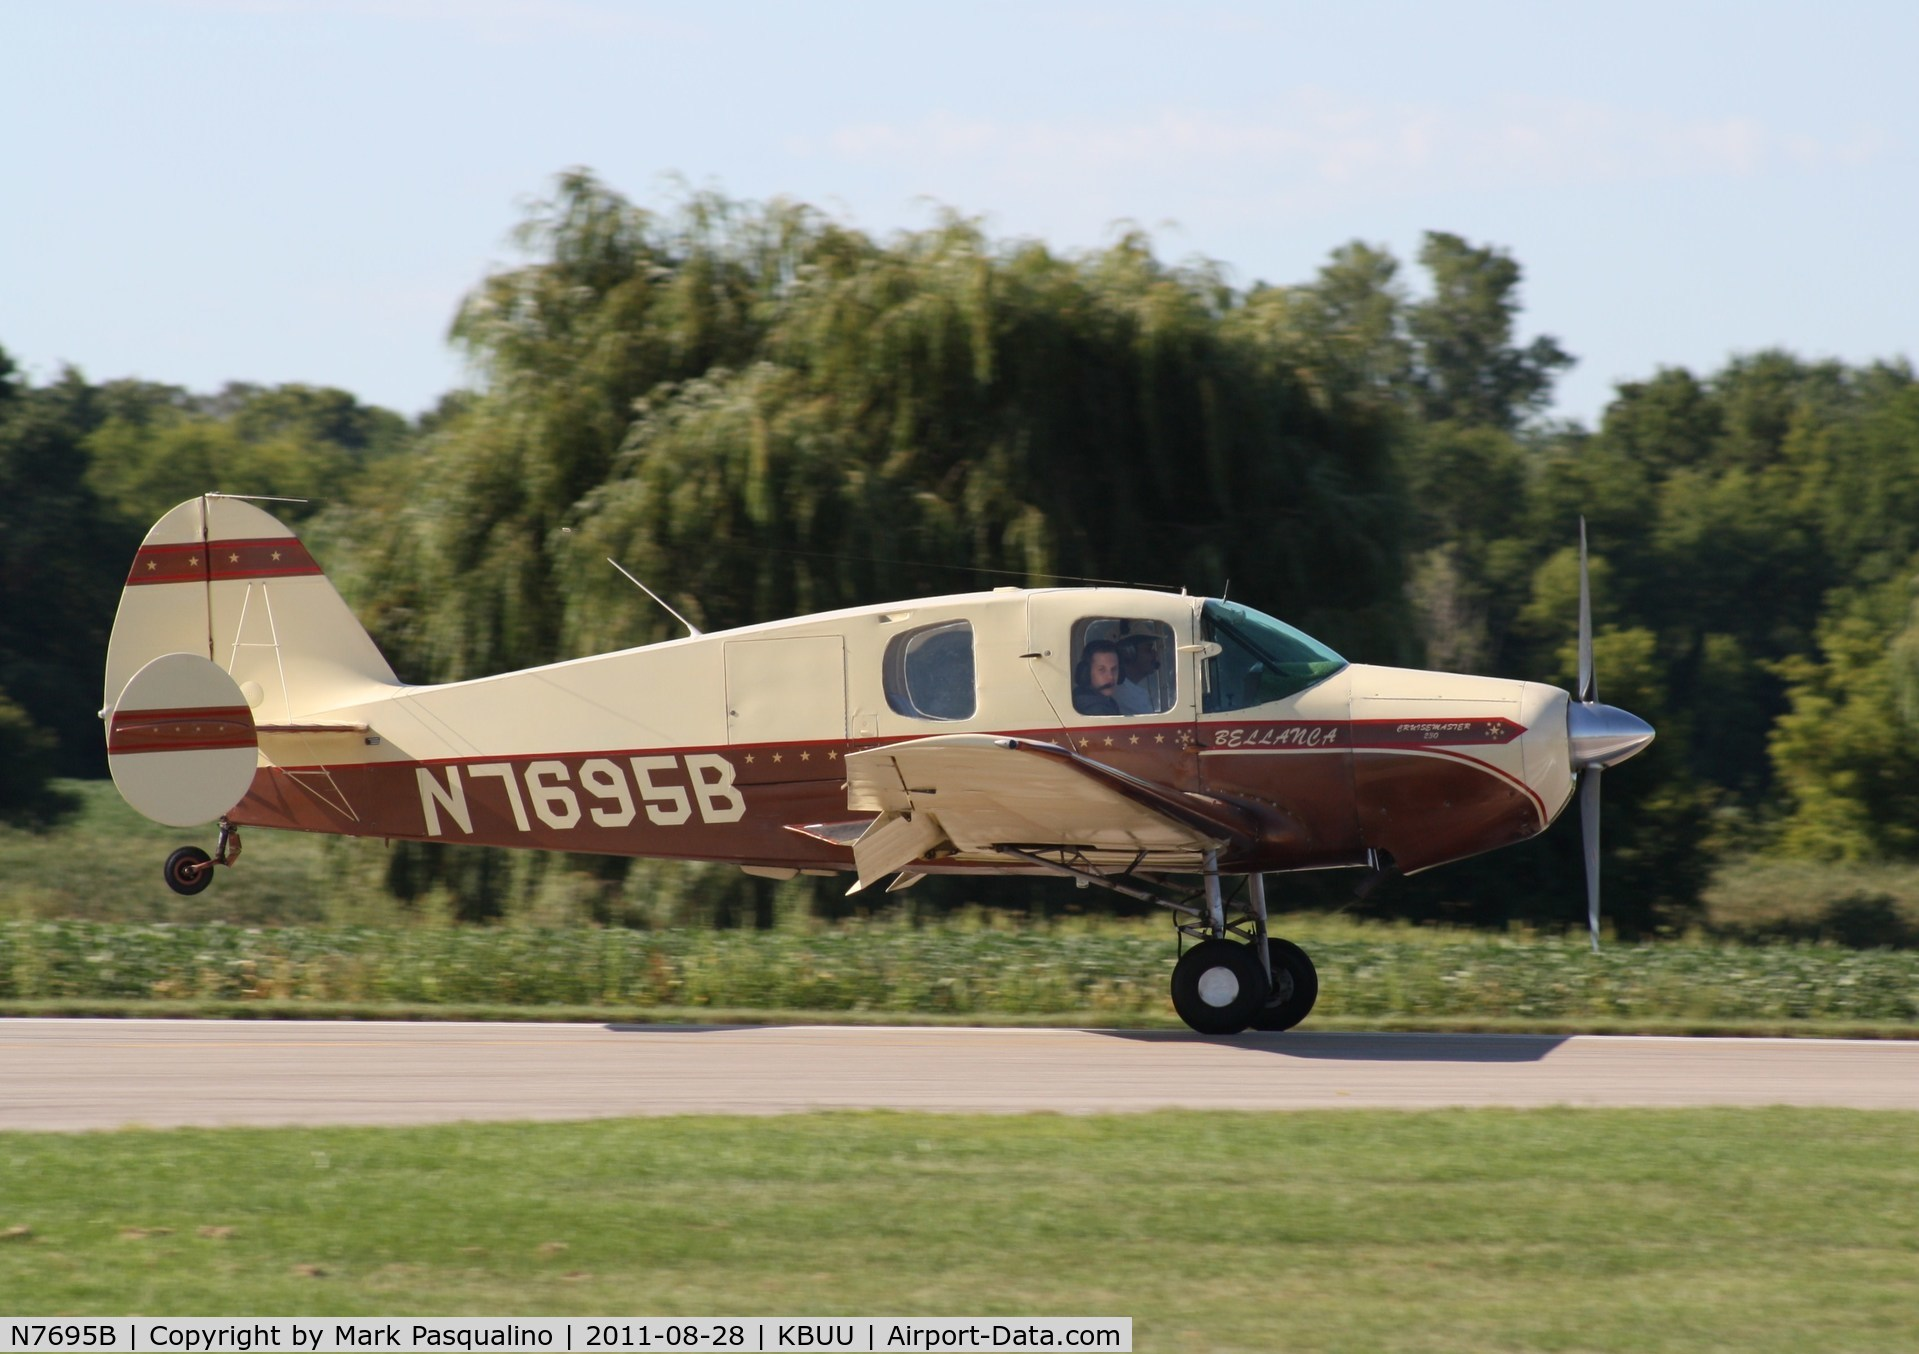 N7695B, 1958 Bellanca 14-19-2 Cruisair Senior C/N 4046, Bellanca 14-19-2